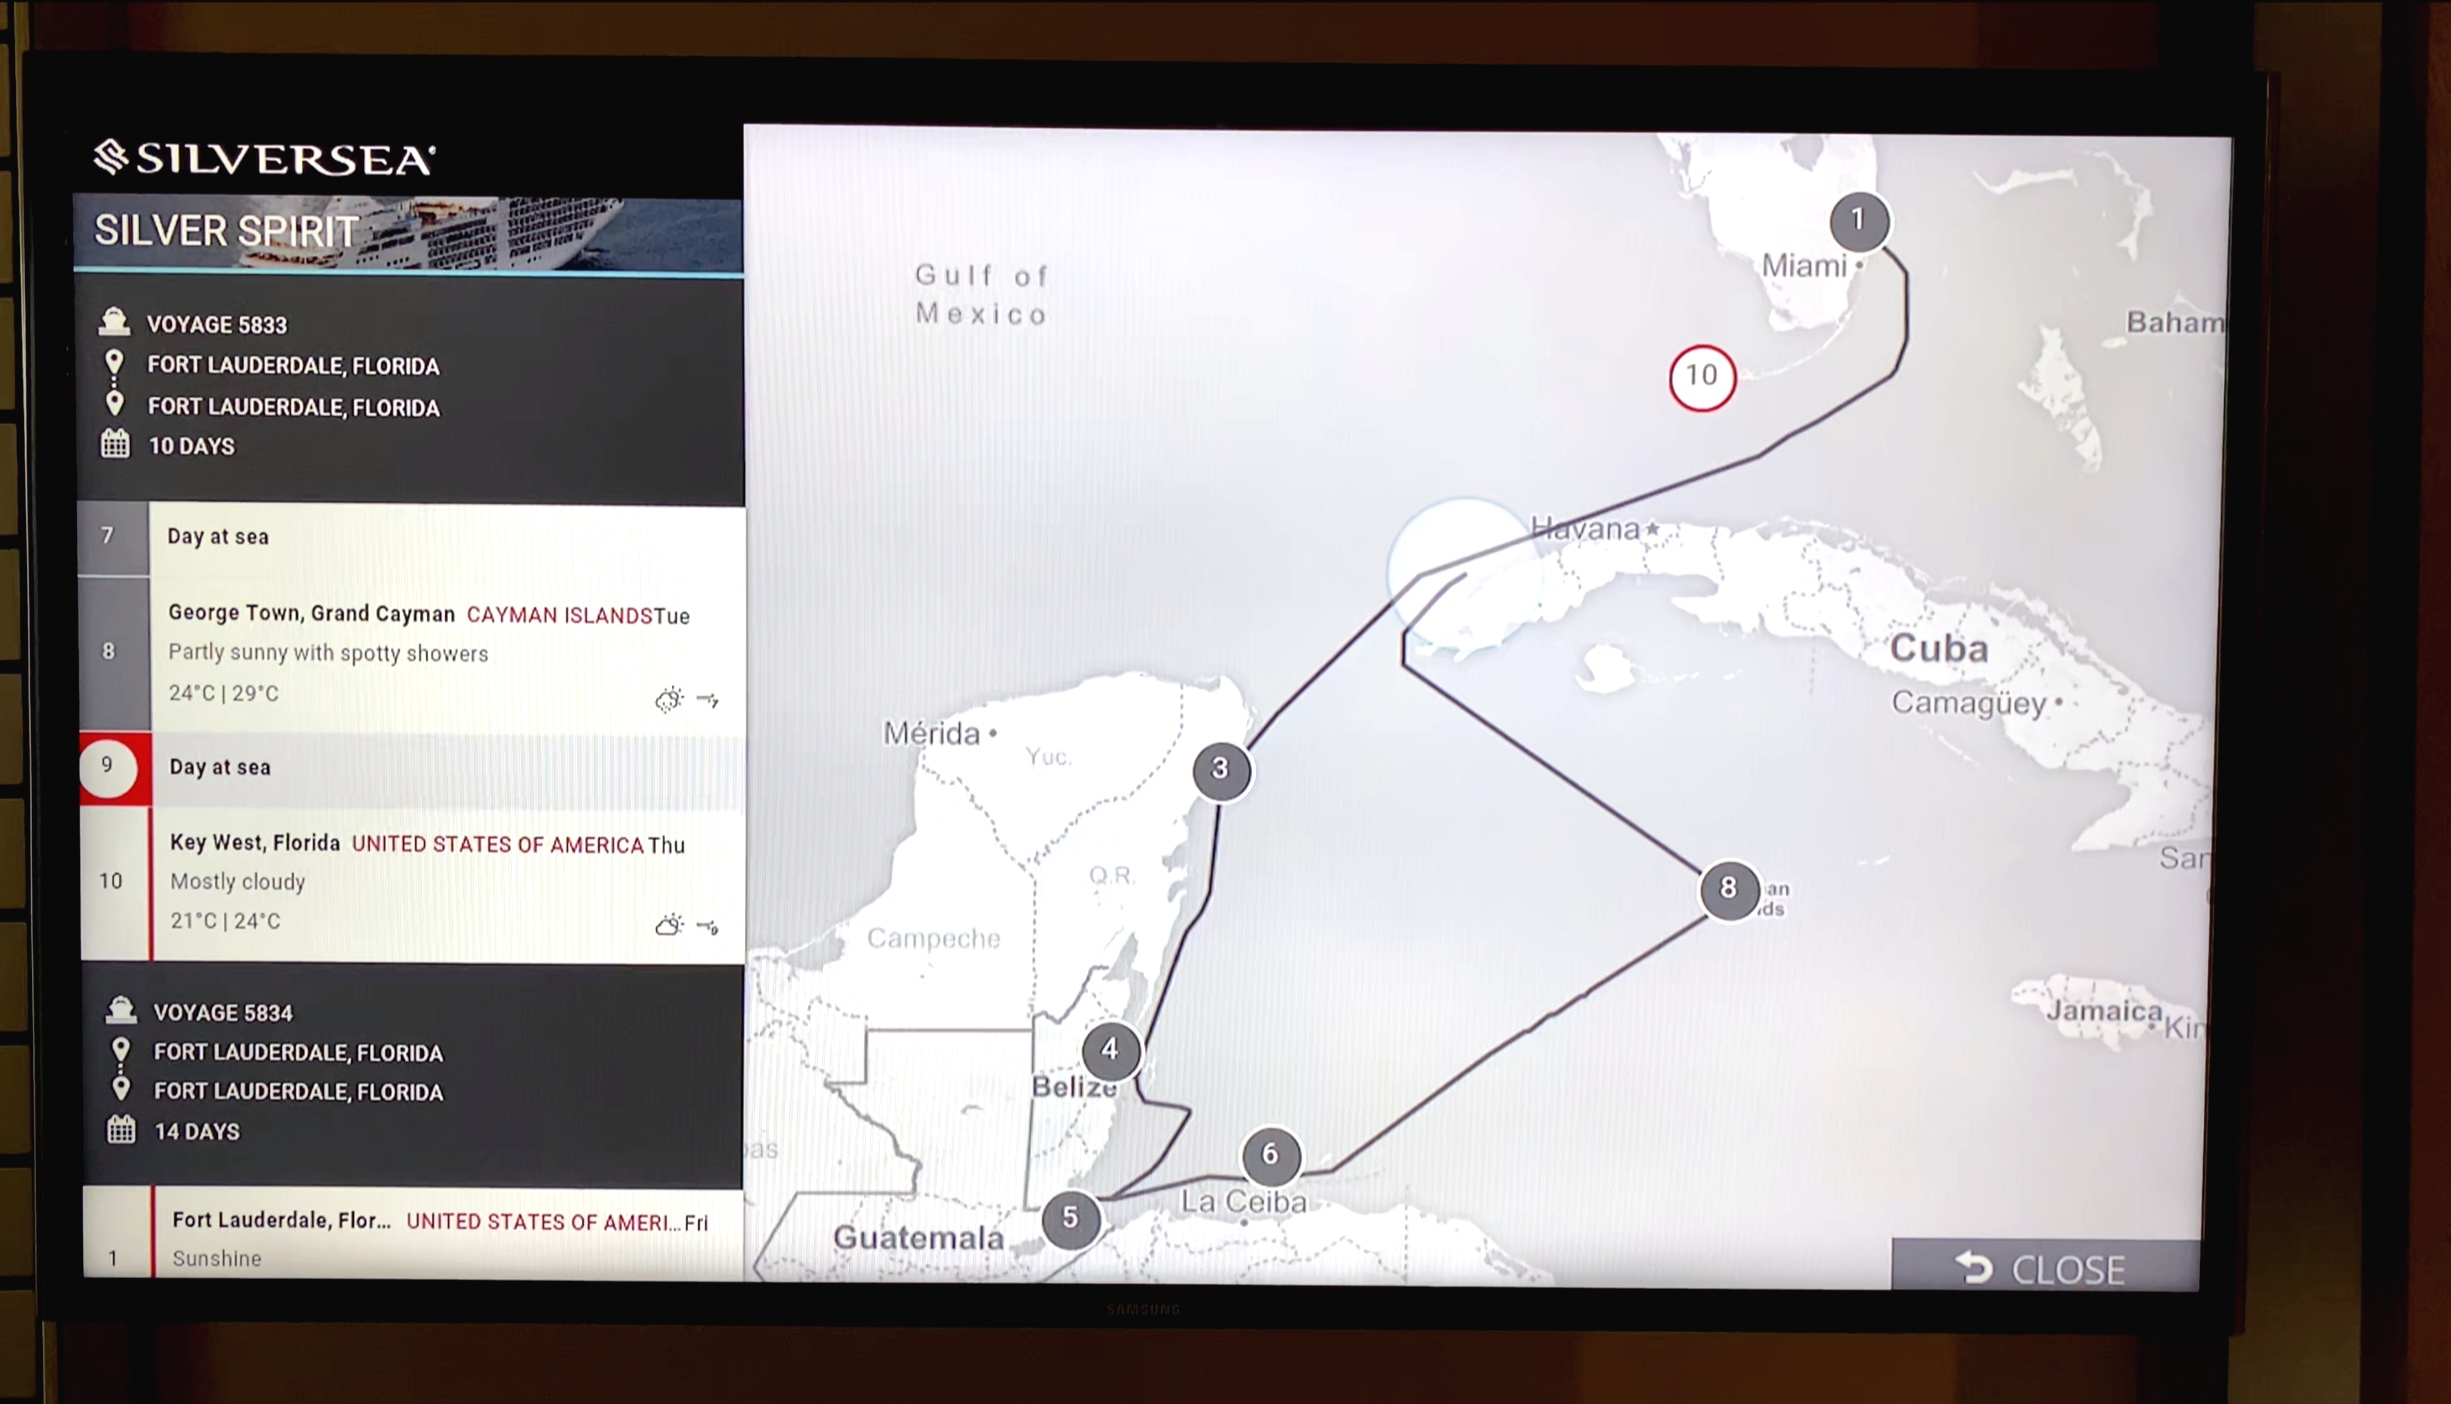 TV voyage route page.